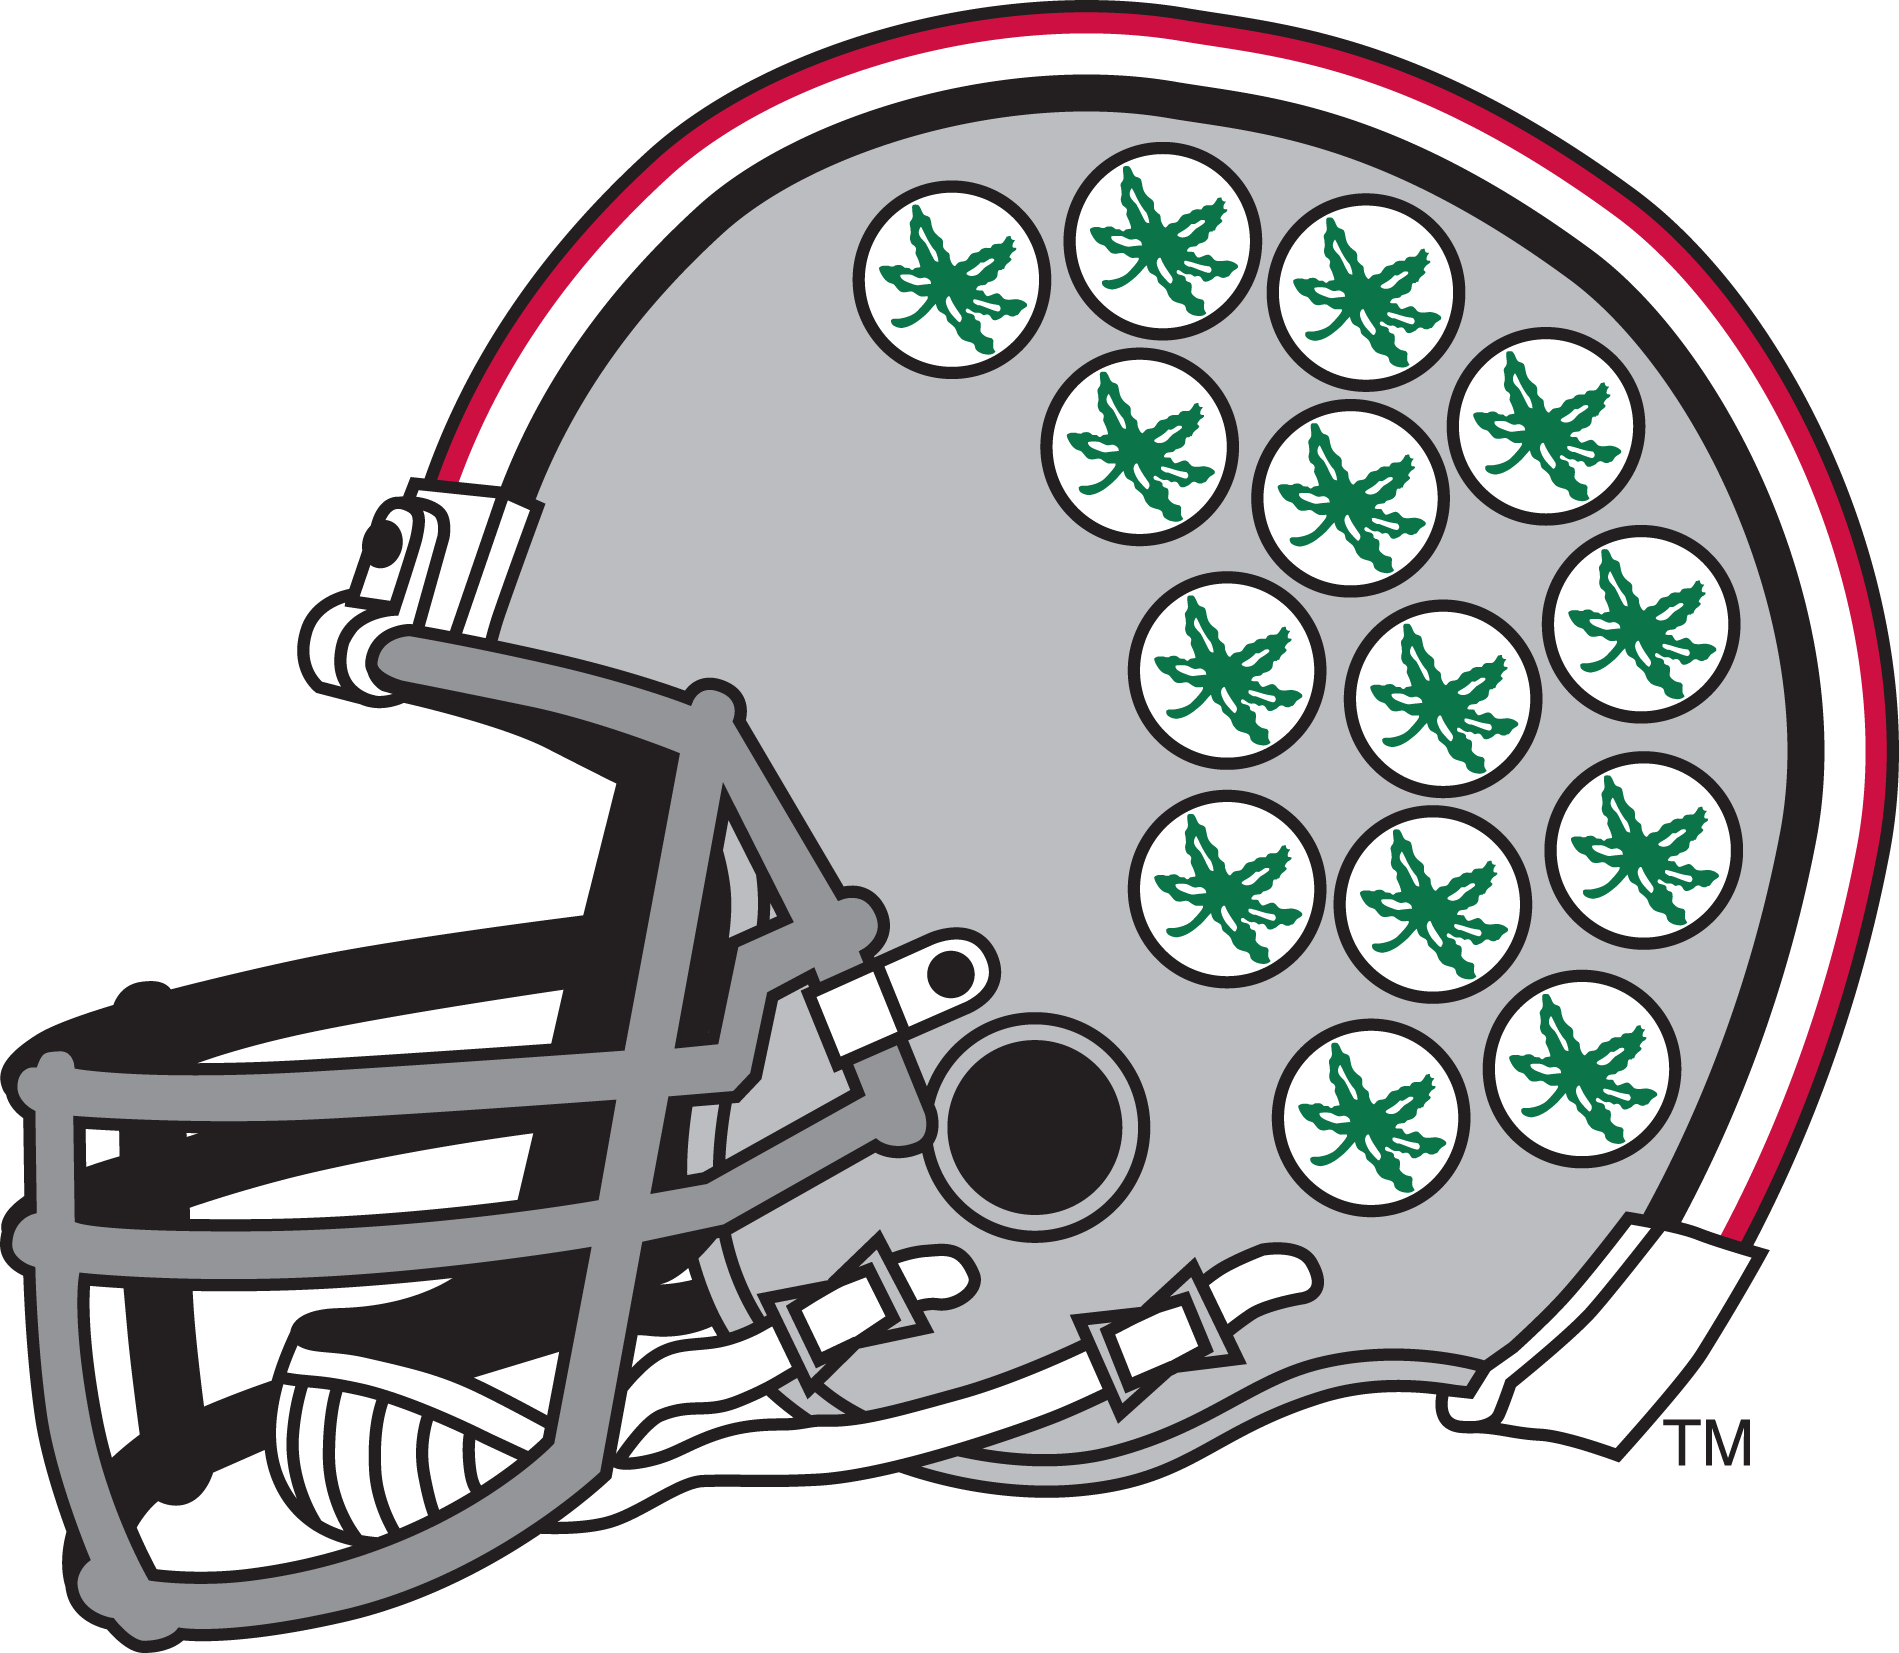 Use Ohio State Emojis To Root For The Buckeyes On Their Quest To The National Championship Ohio State Buckeyes Football Ohio State Ohio State Football